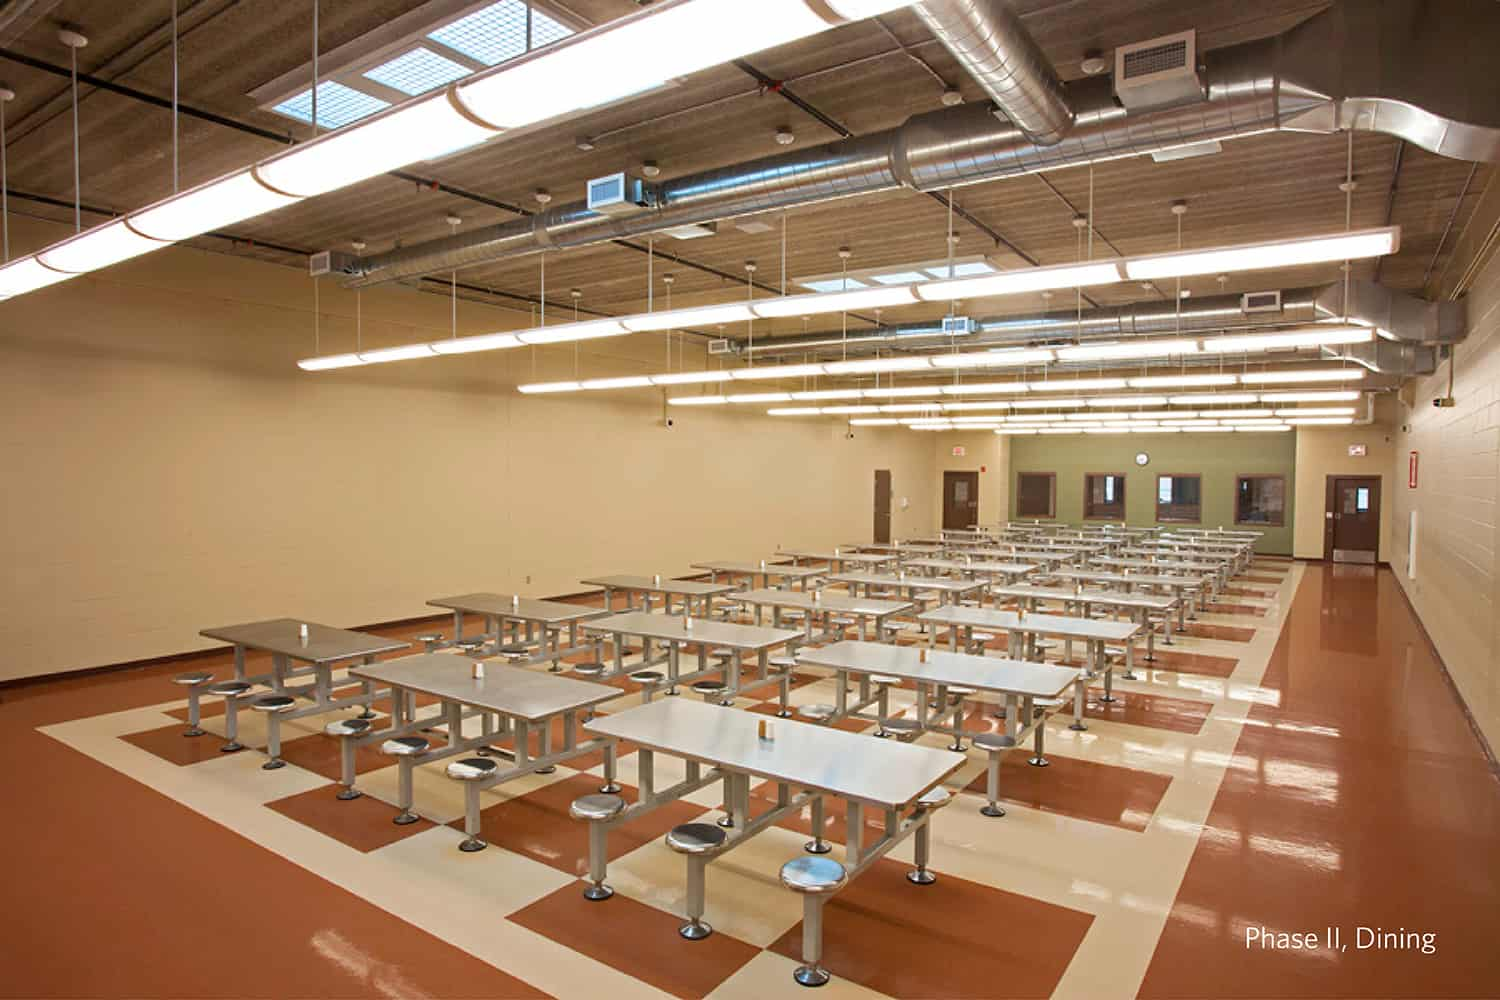 The MSOP- Moose Lake cafeteria features non-institutional feeling finishes.